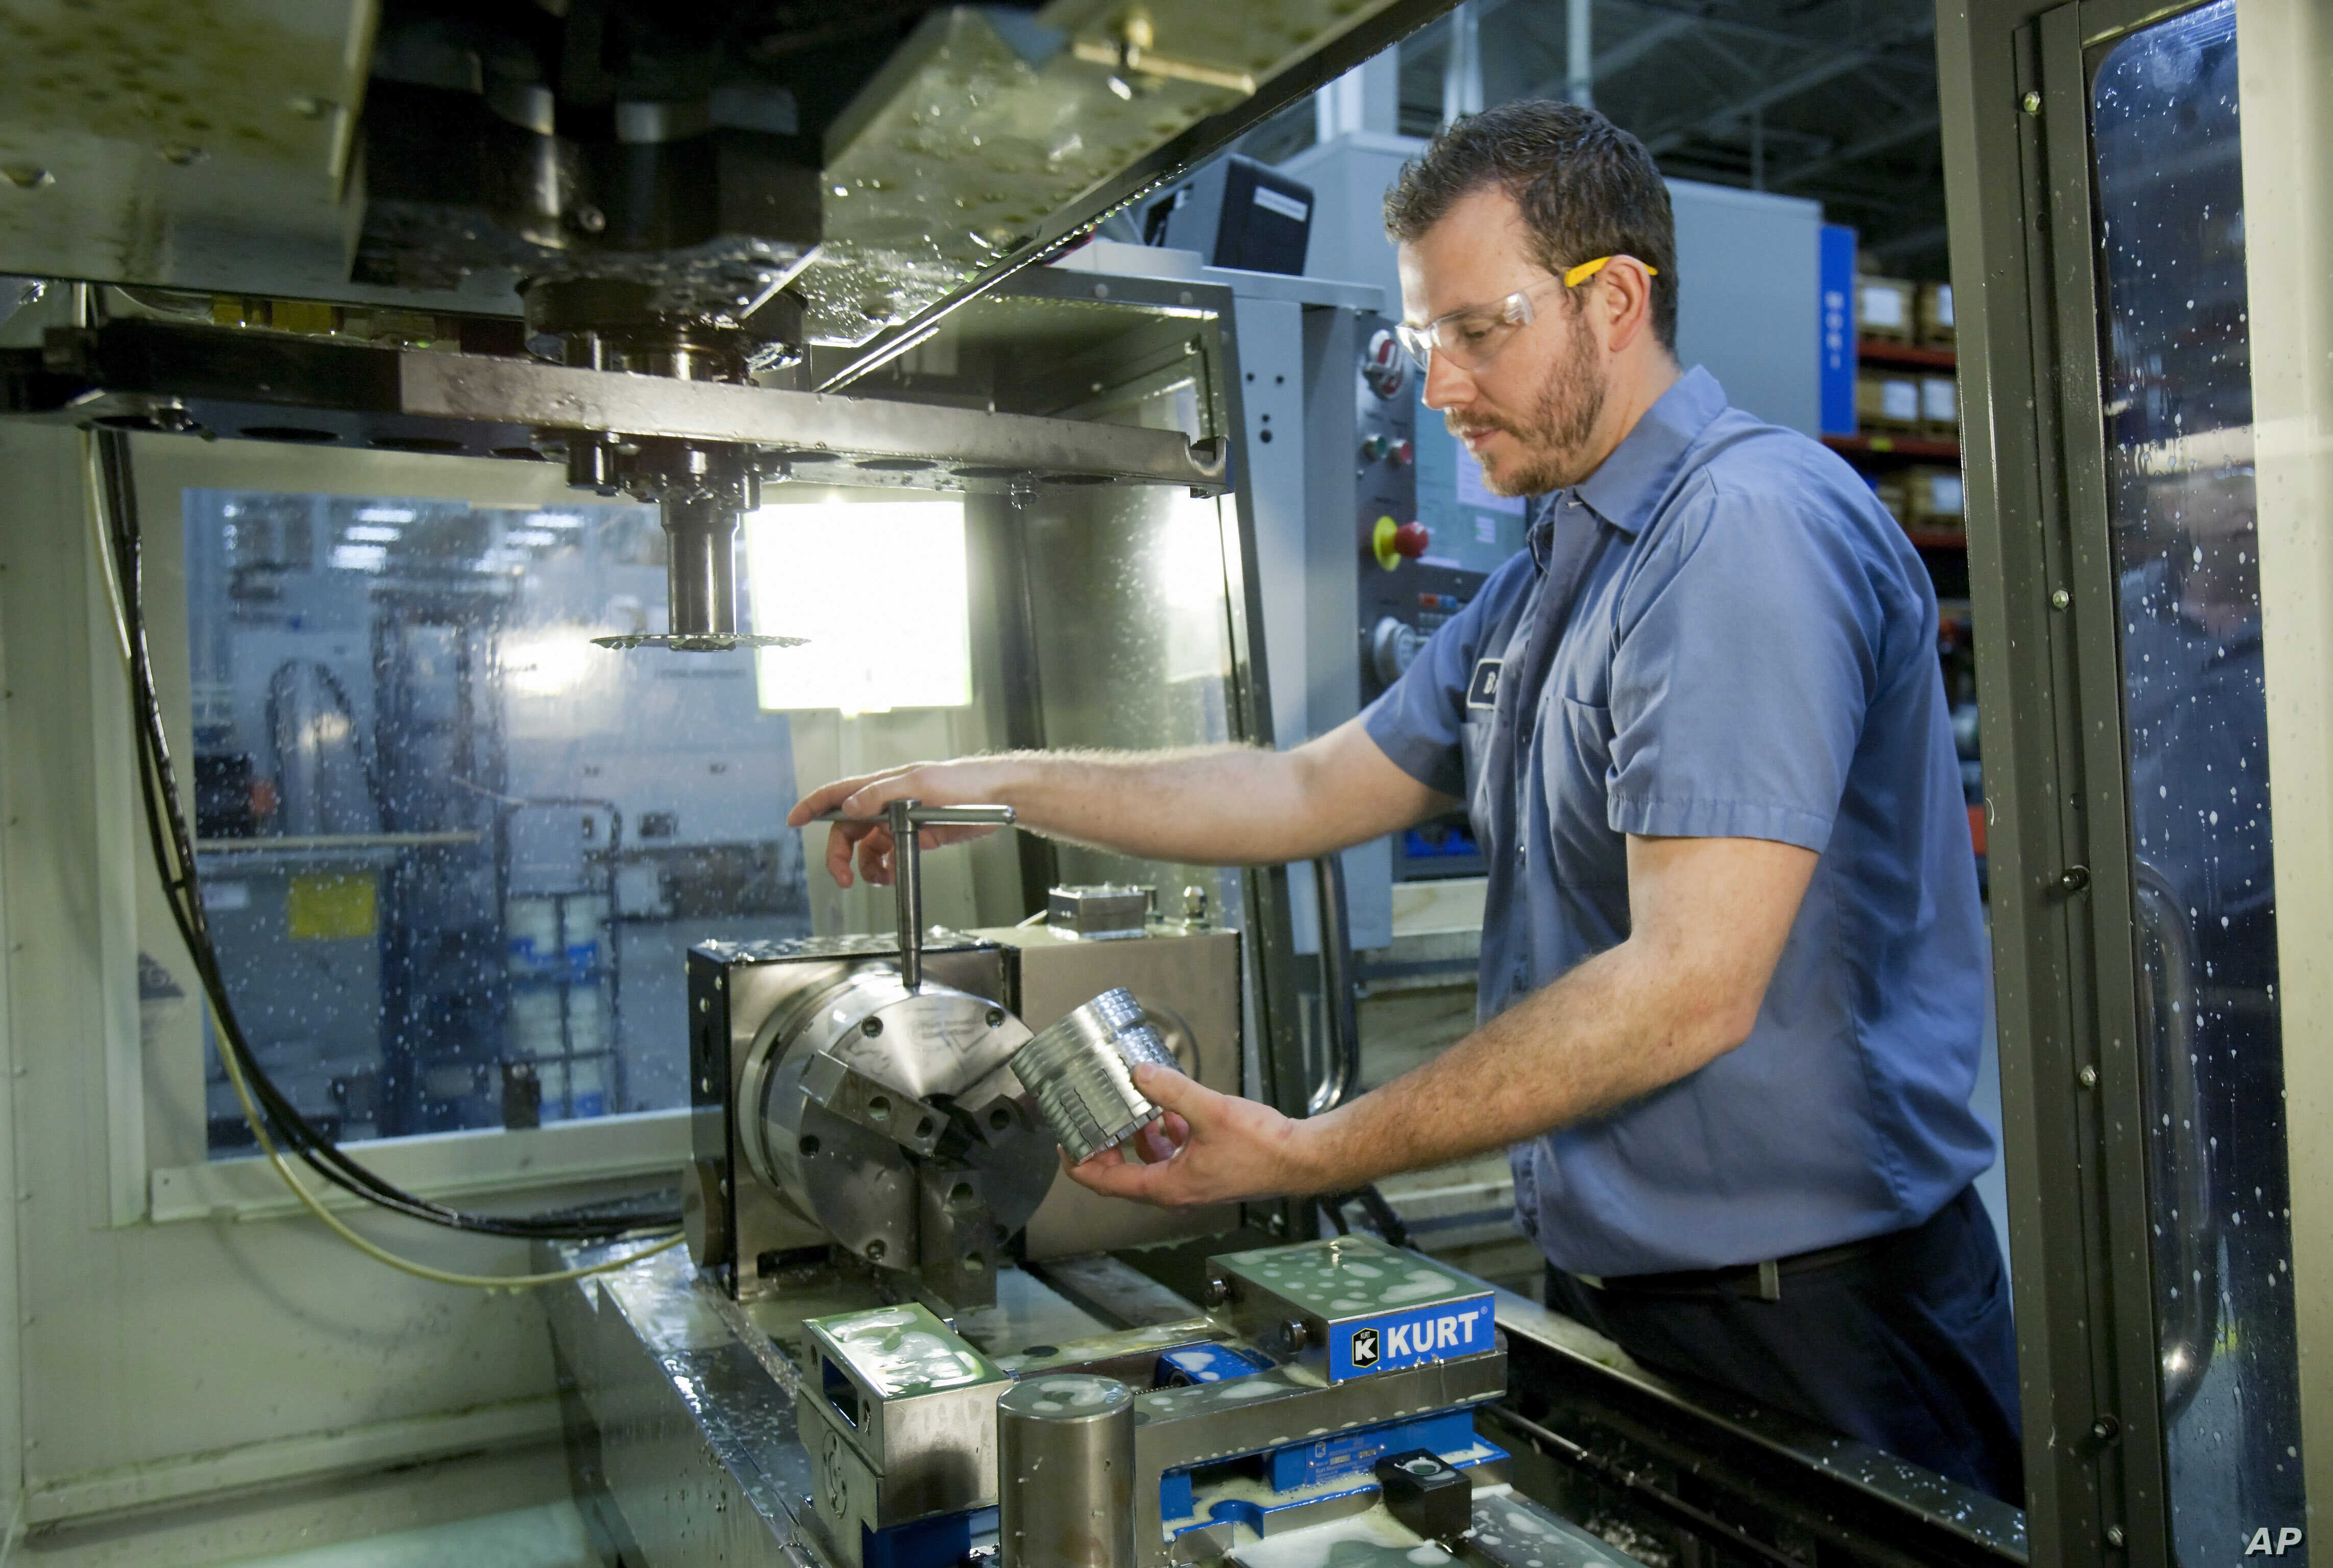 FILE — Brian Gasiewski, who received training at Macomb Community College, removes an external housing for an industrial shock absorber from a CNC  machine at Fitzpatrick Manufacturing Co. in Sterling Heights, Michigan.